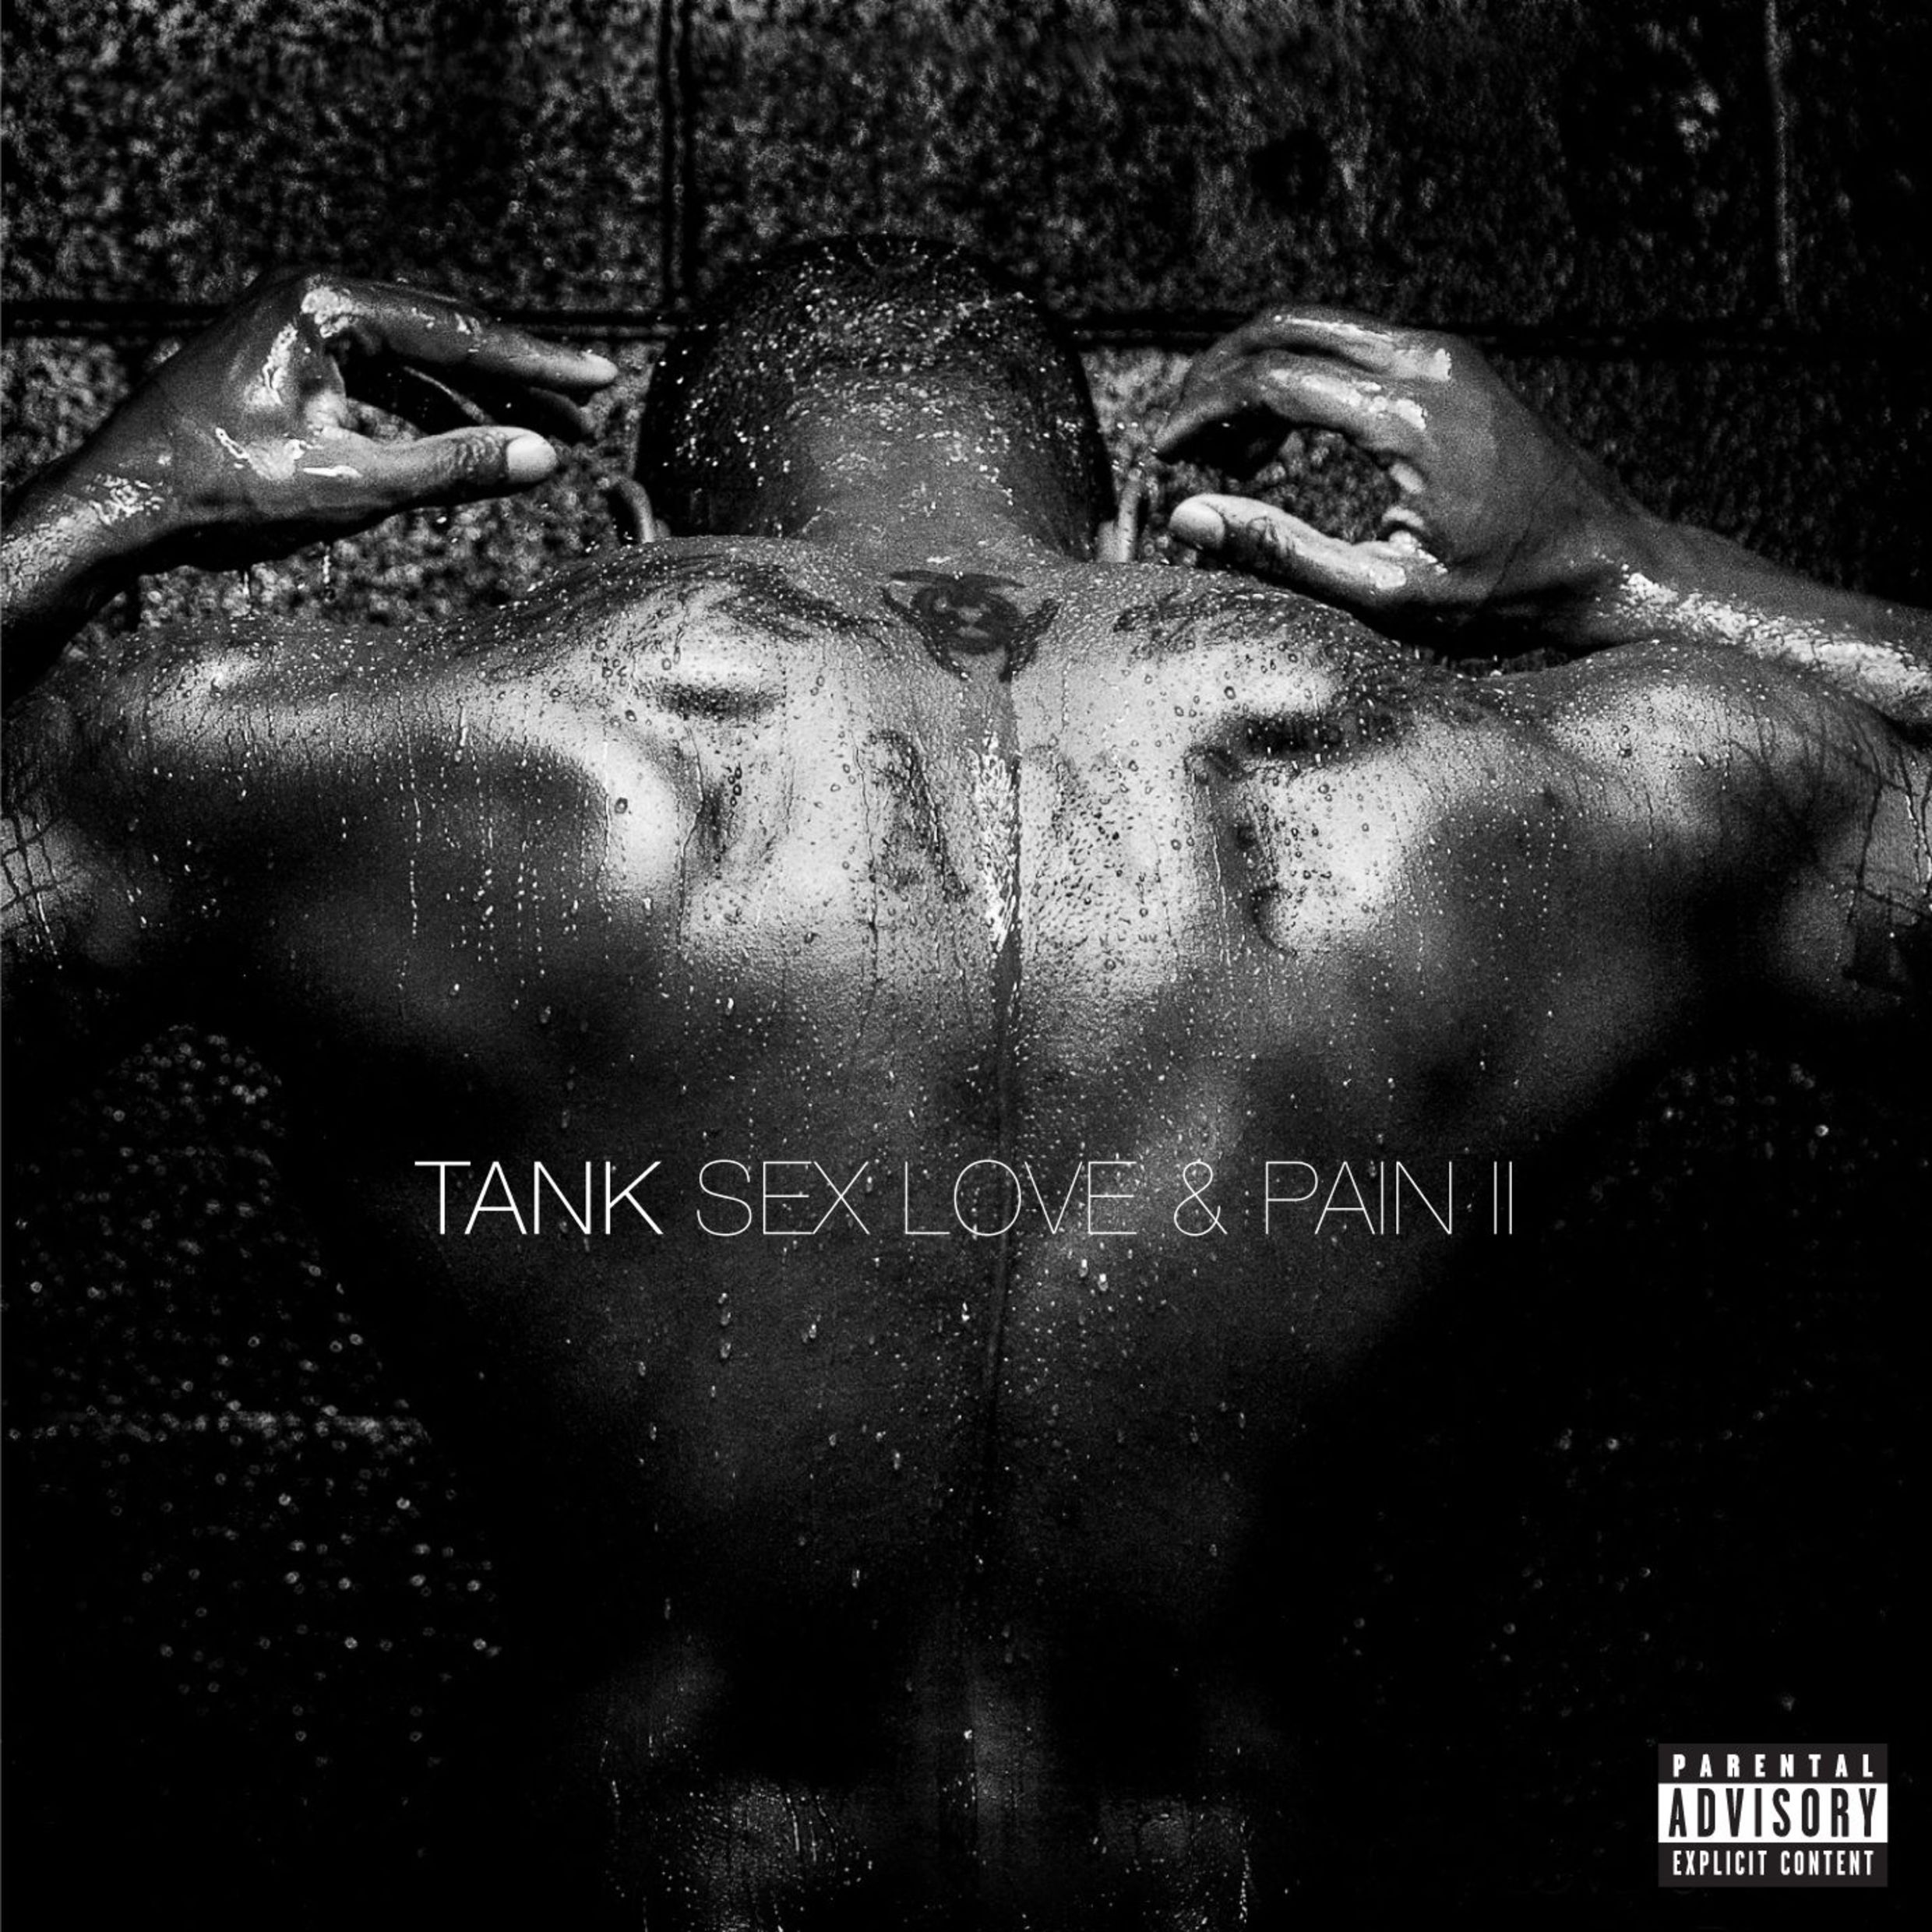 Tank-Sex-Love-Pain-II-2016-2480x2480